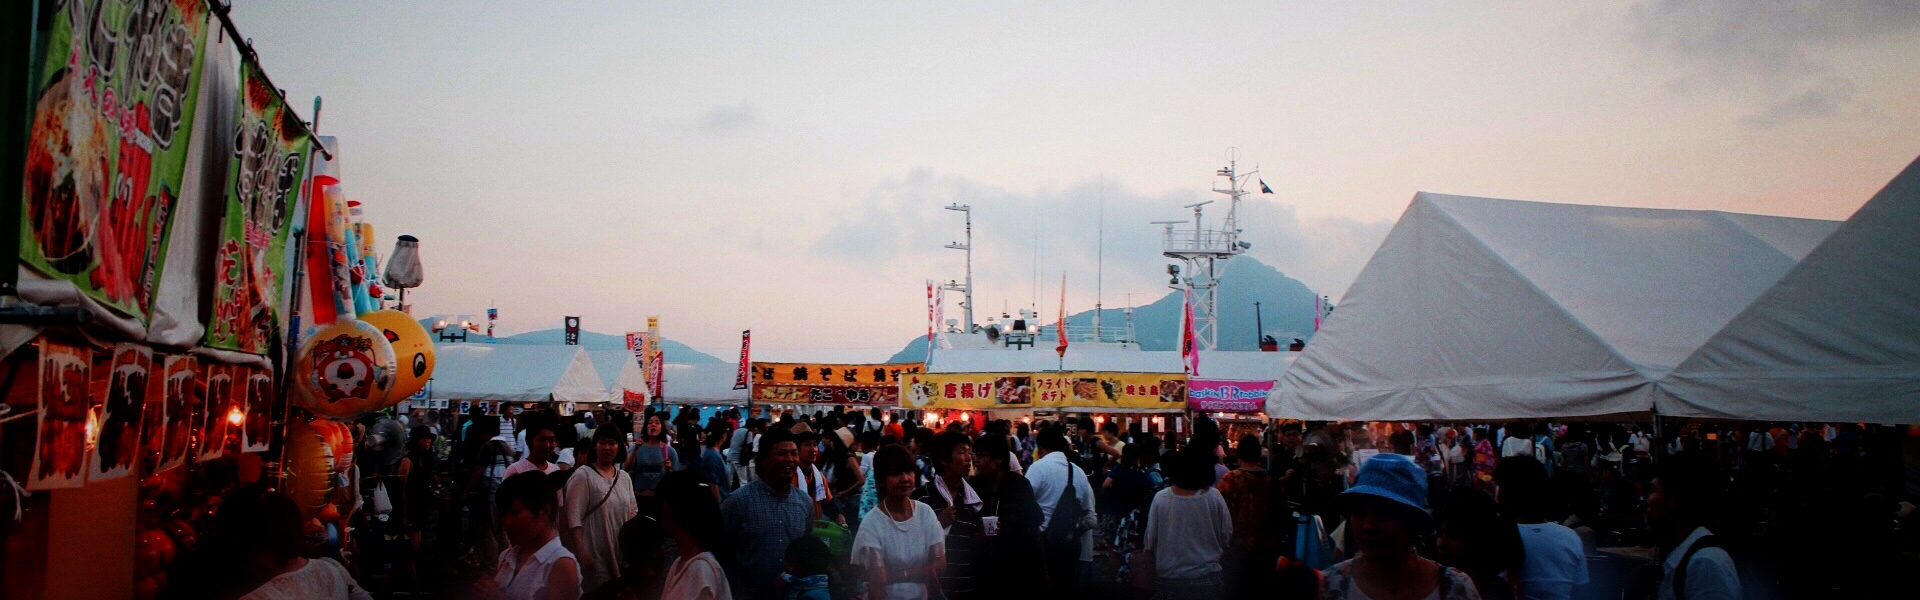 SASEBO SEASIDE FESTIVAL 2018